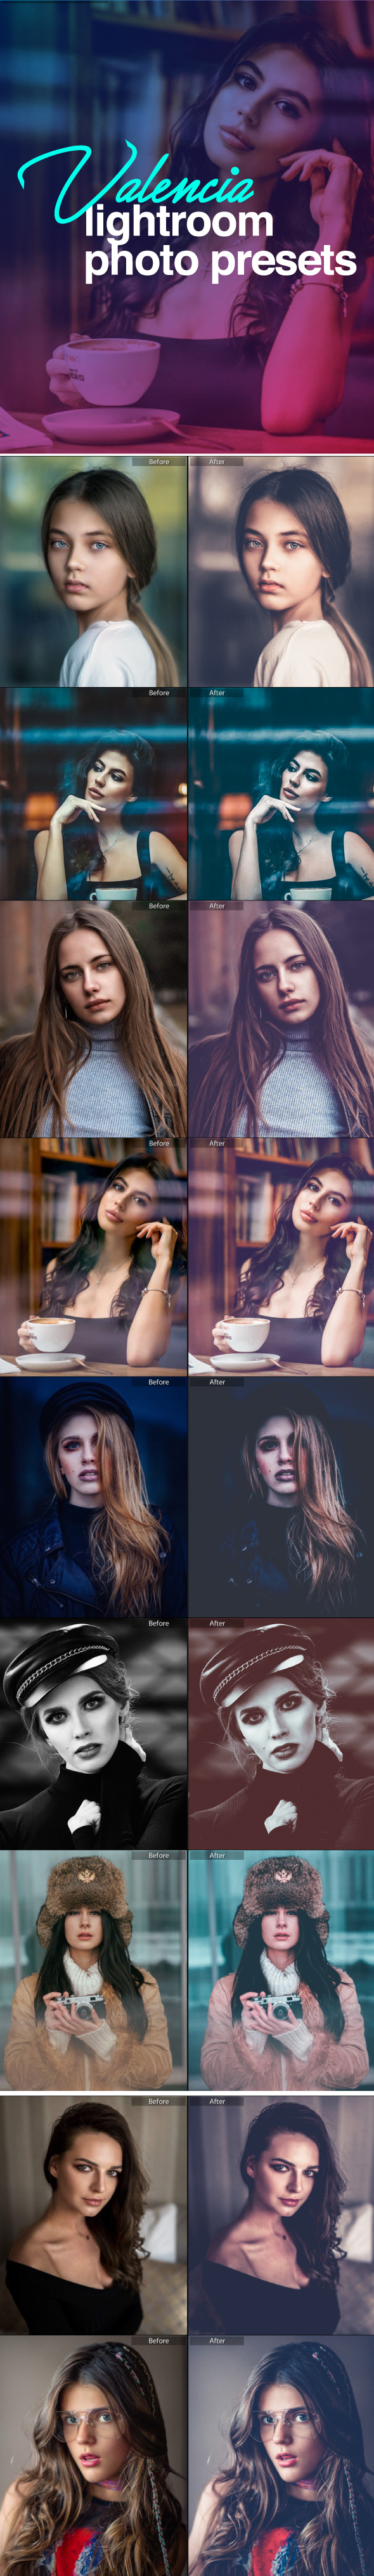 Valencia Lightroom Presets - Vintage Lightroom Presets